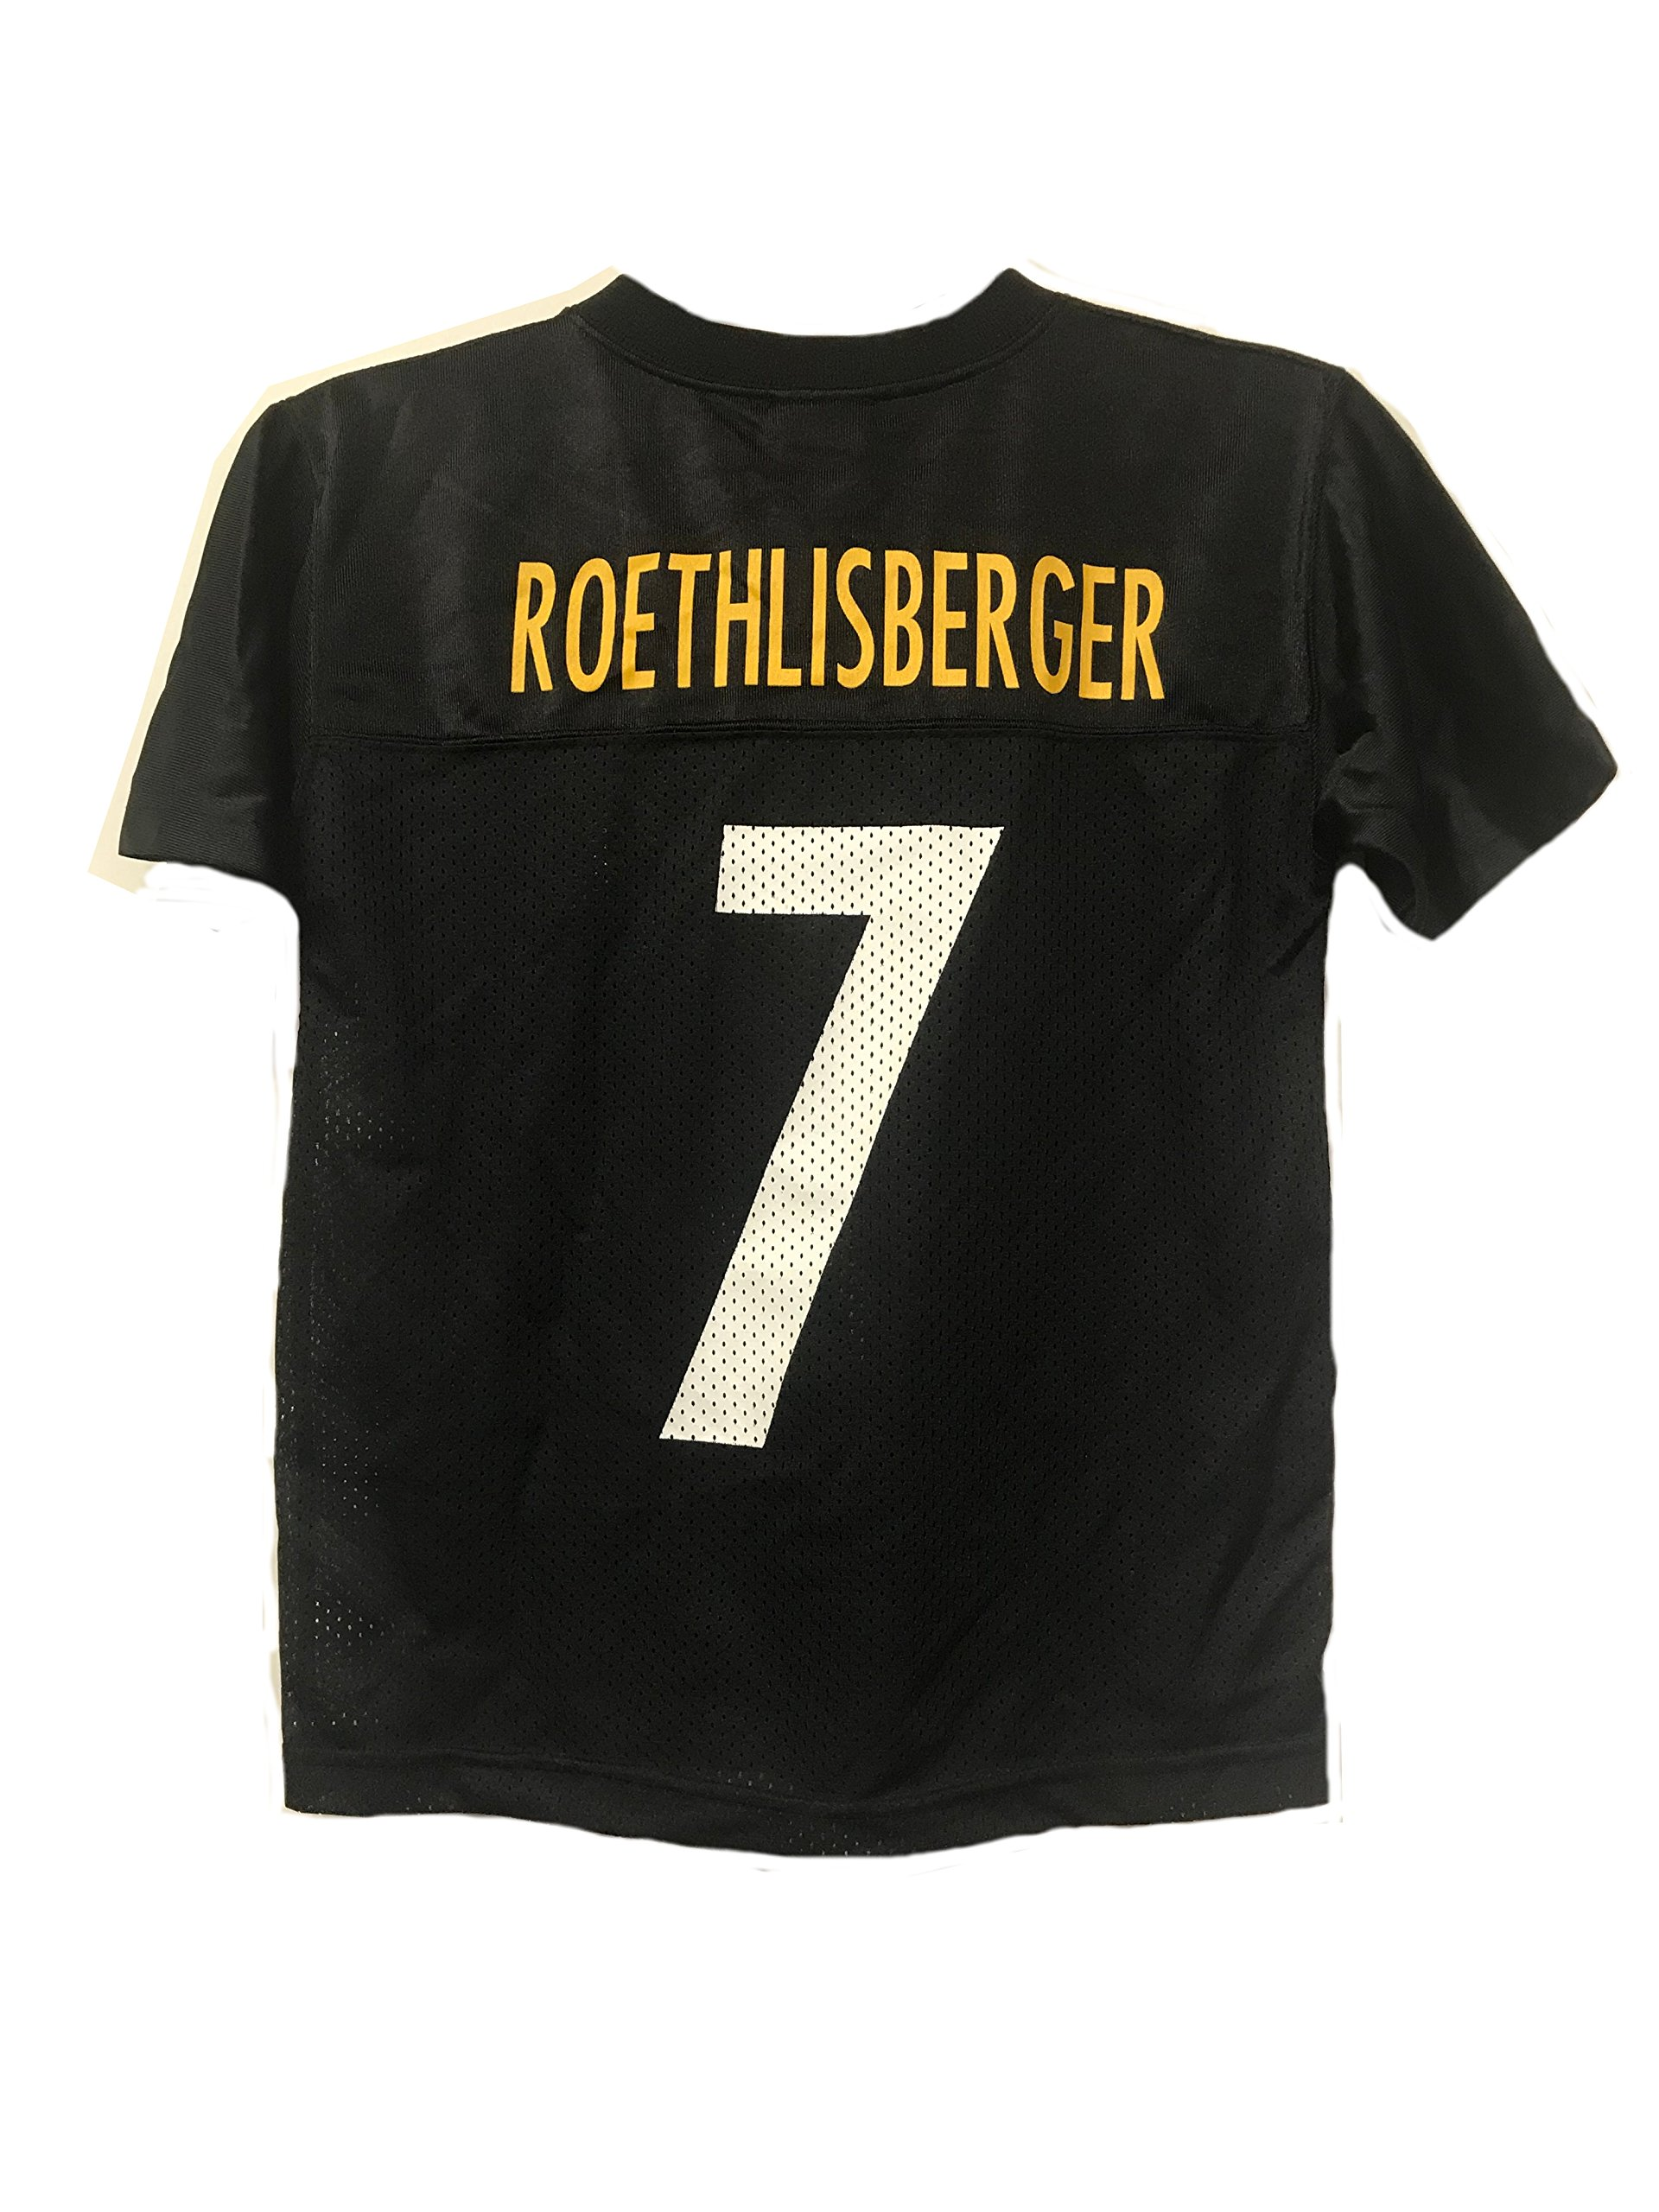 89cd8ffe0 Ben Roethlisberger Pittsburgh Steelers NFL Youth Black Home Mid-Tier Mesh  Jersey (Youth X-Large 18-20)